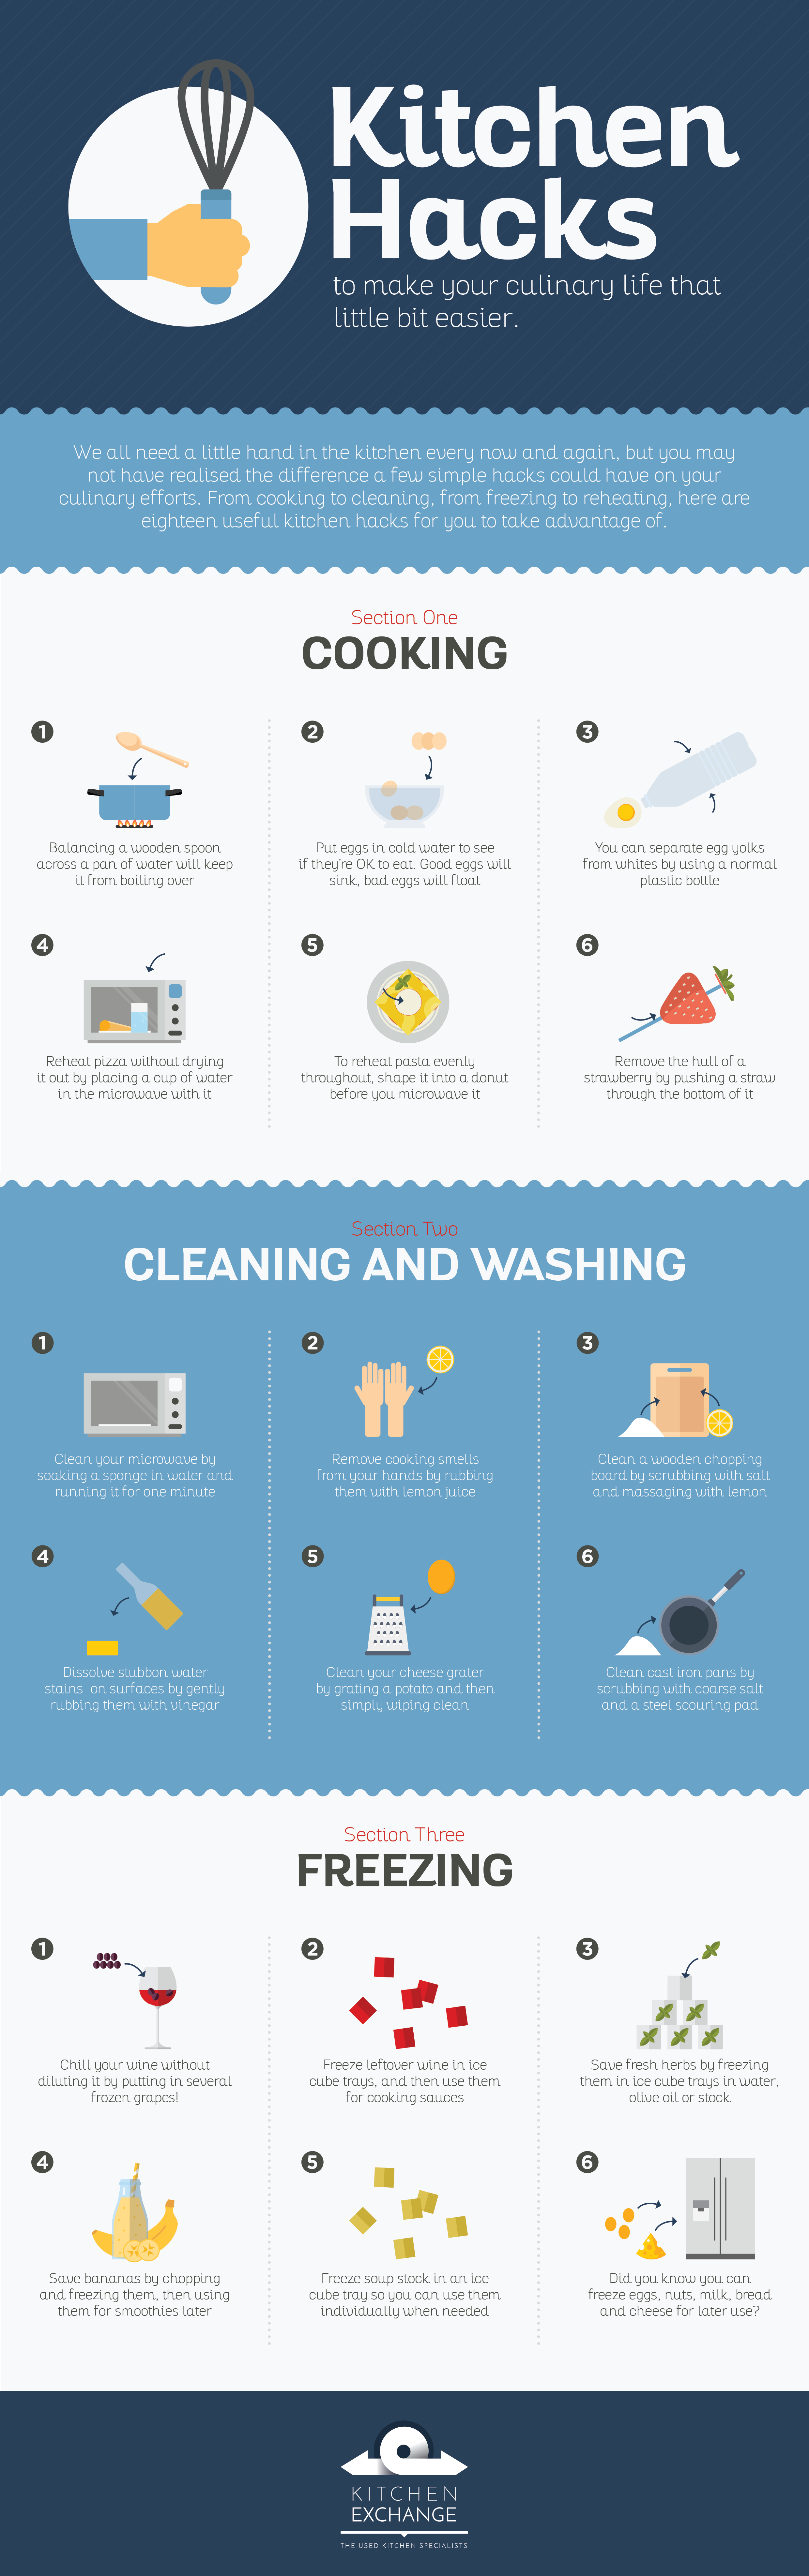 Best Kitchen Hacks To Make Your Life Easier by Kitchen Exchange